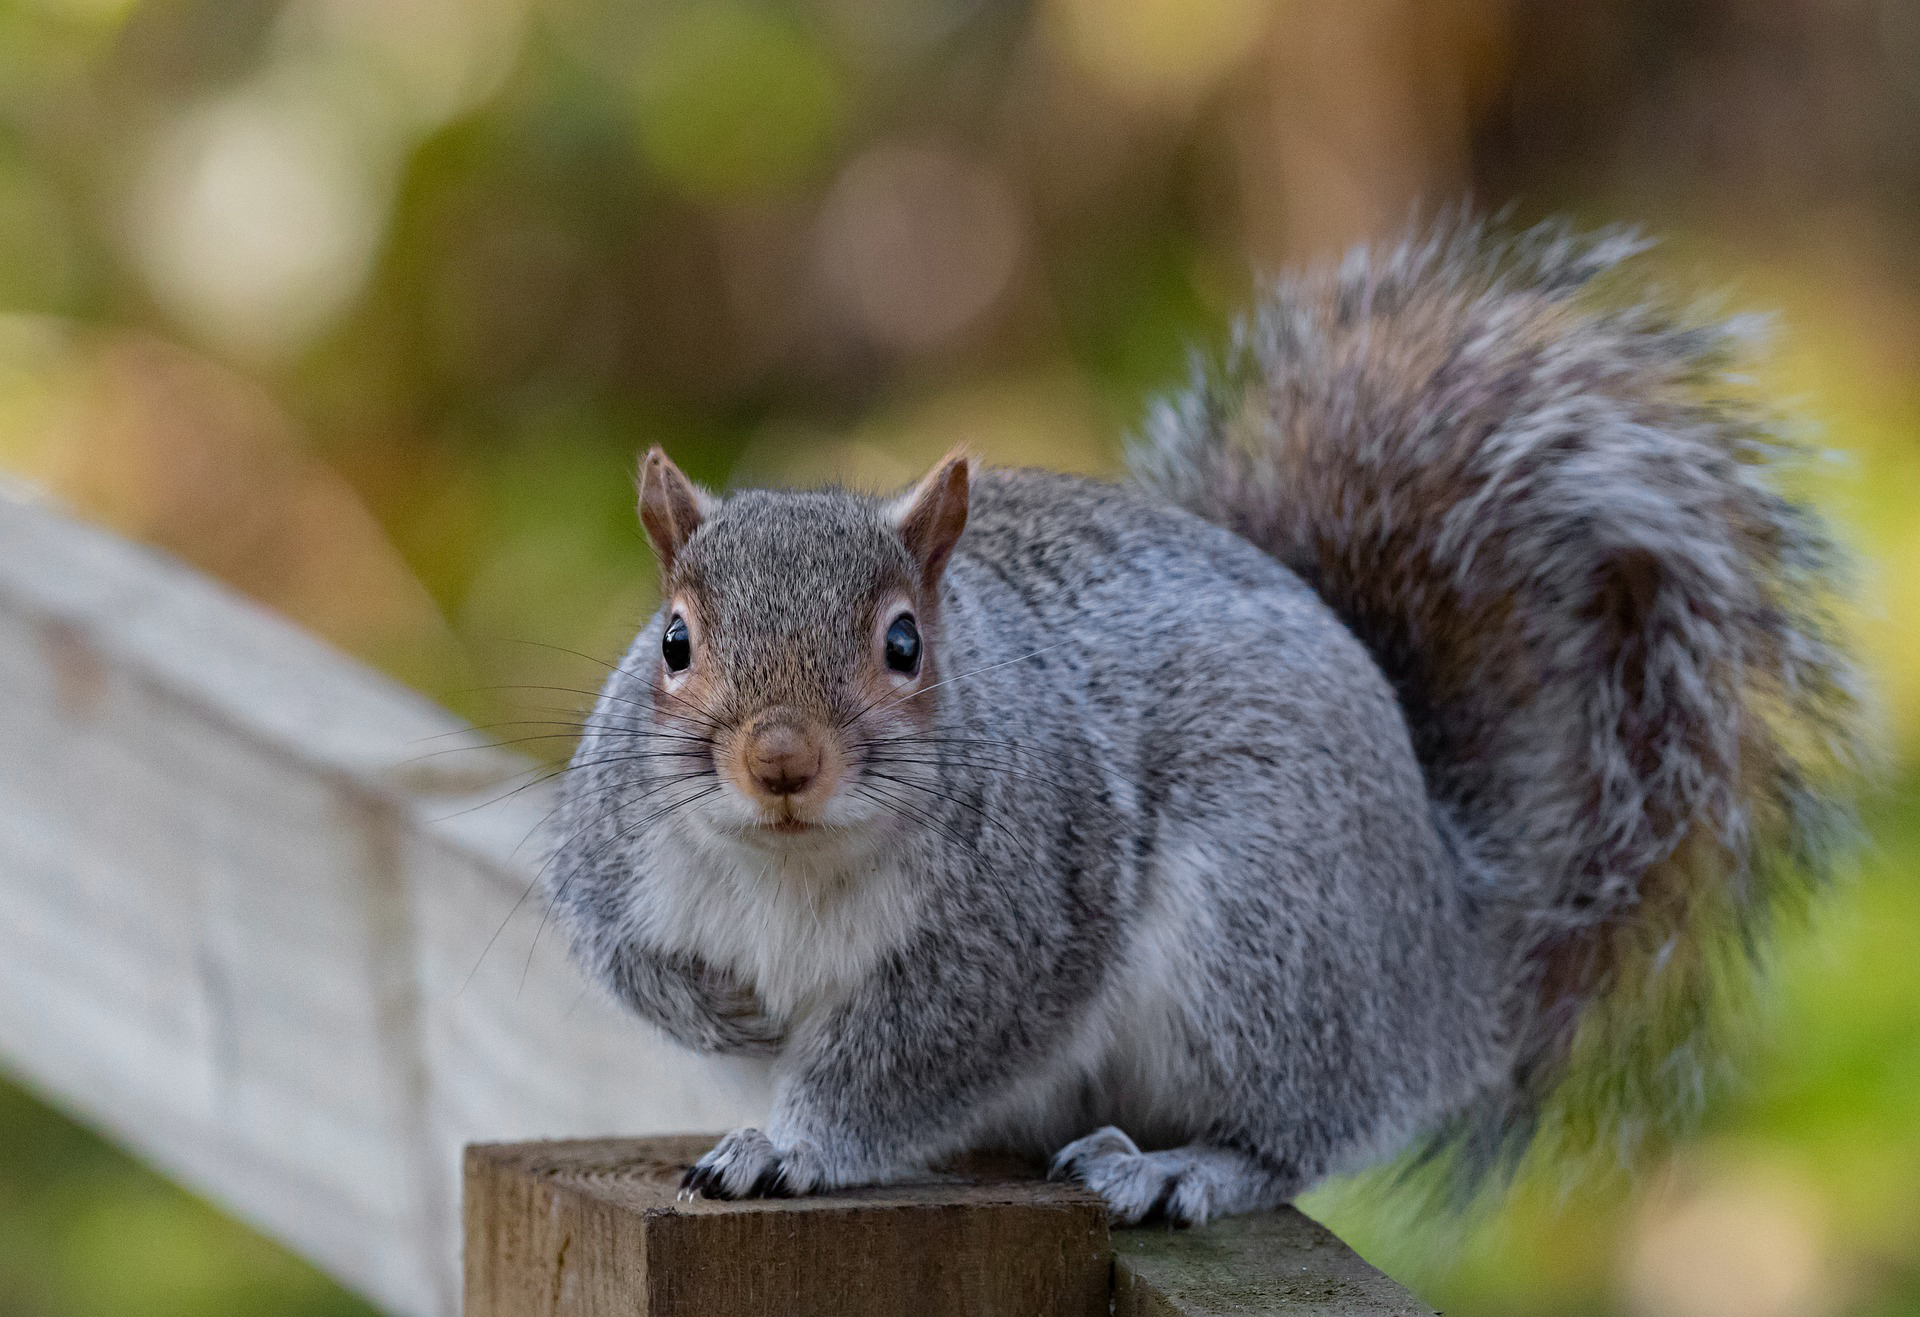 Squirrel Removal Services in NYC and NJ